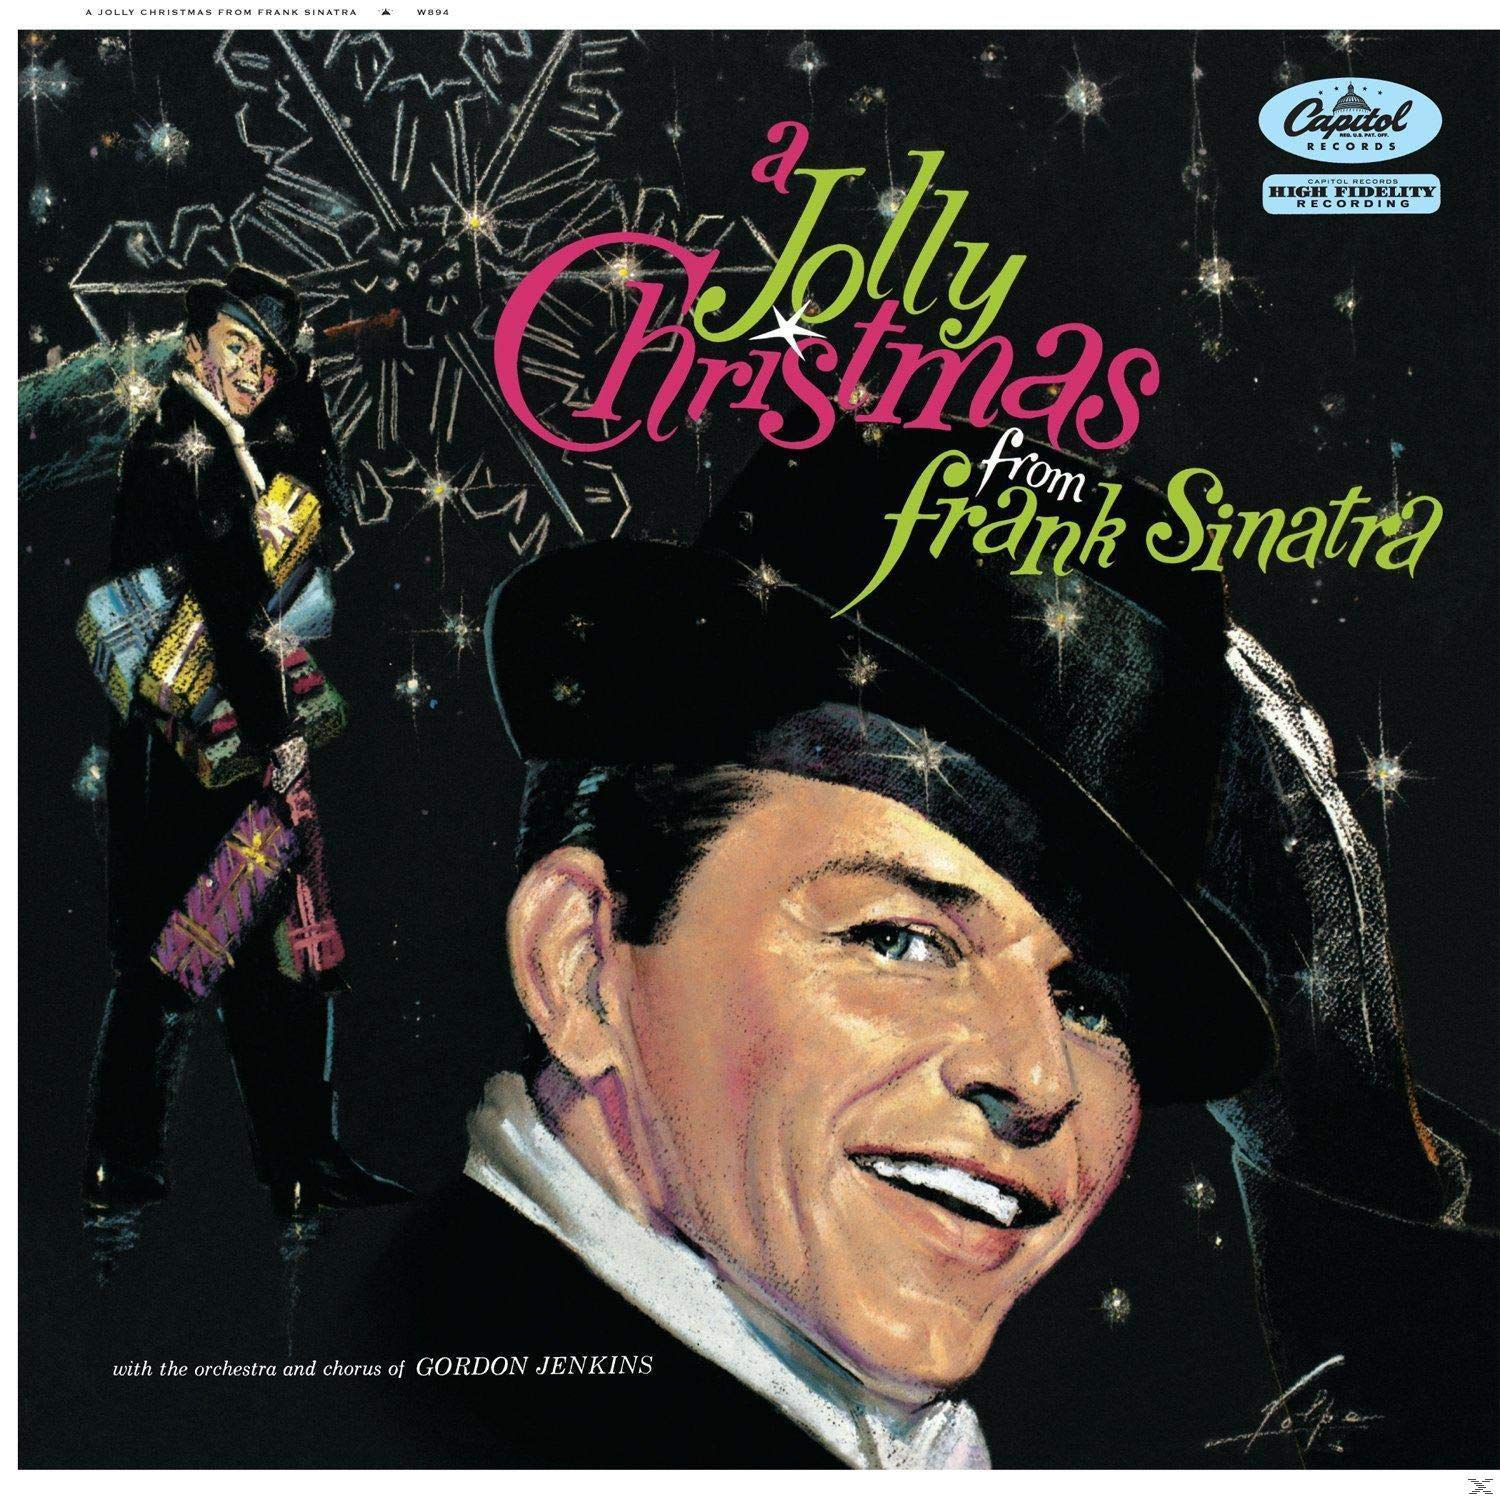 Frank Sinatra - A Jolly Christmas From Frank Sinatra [LP] - Urban Vinyl | Records, Headphones, and more.